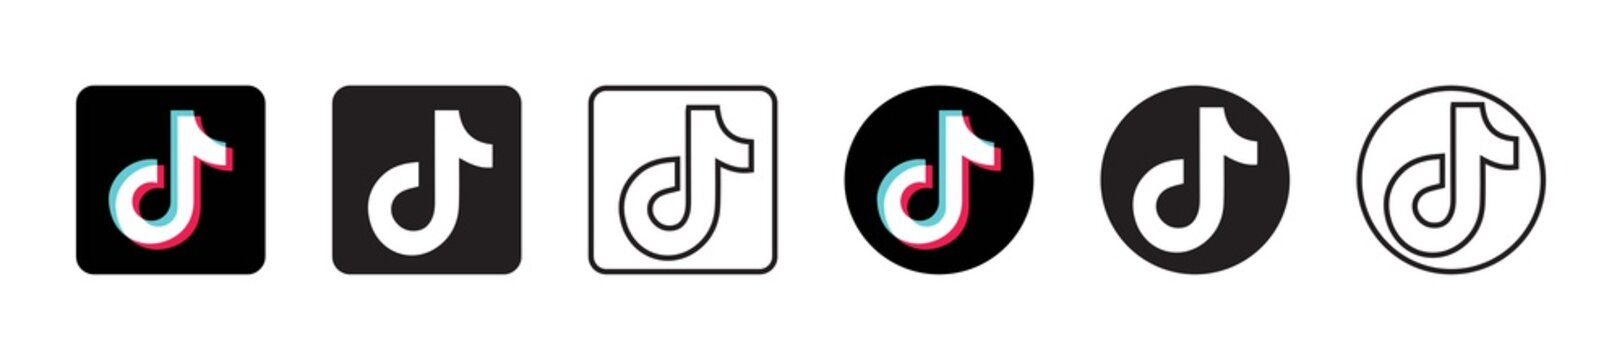 Tik Tok logo set in six different versions in a flat design